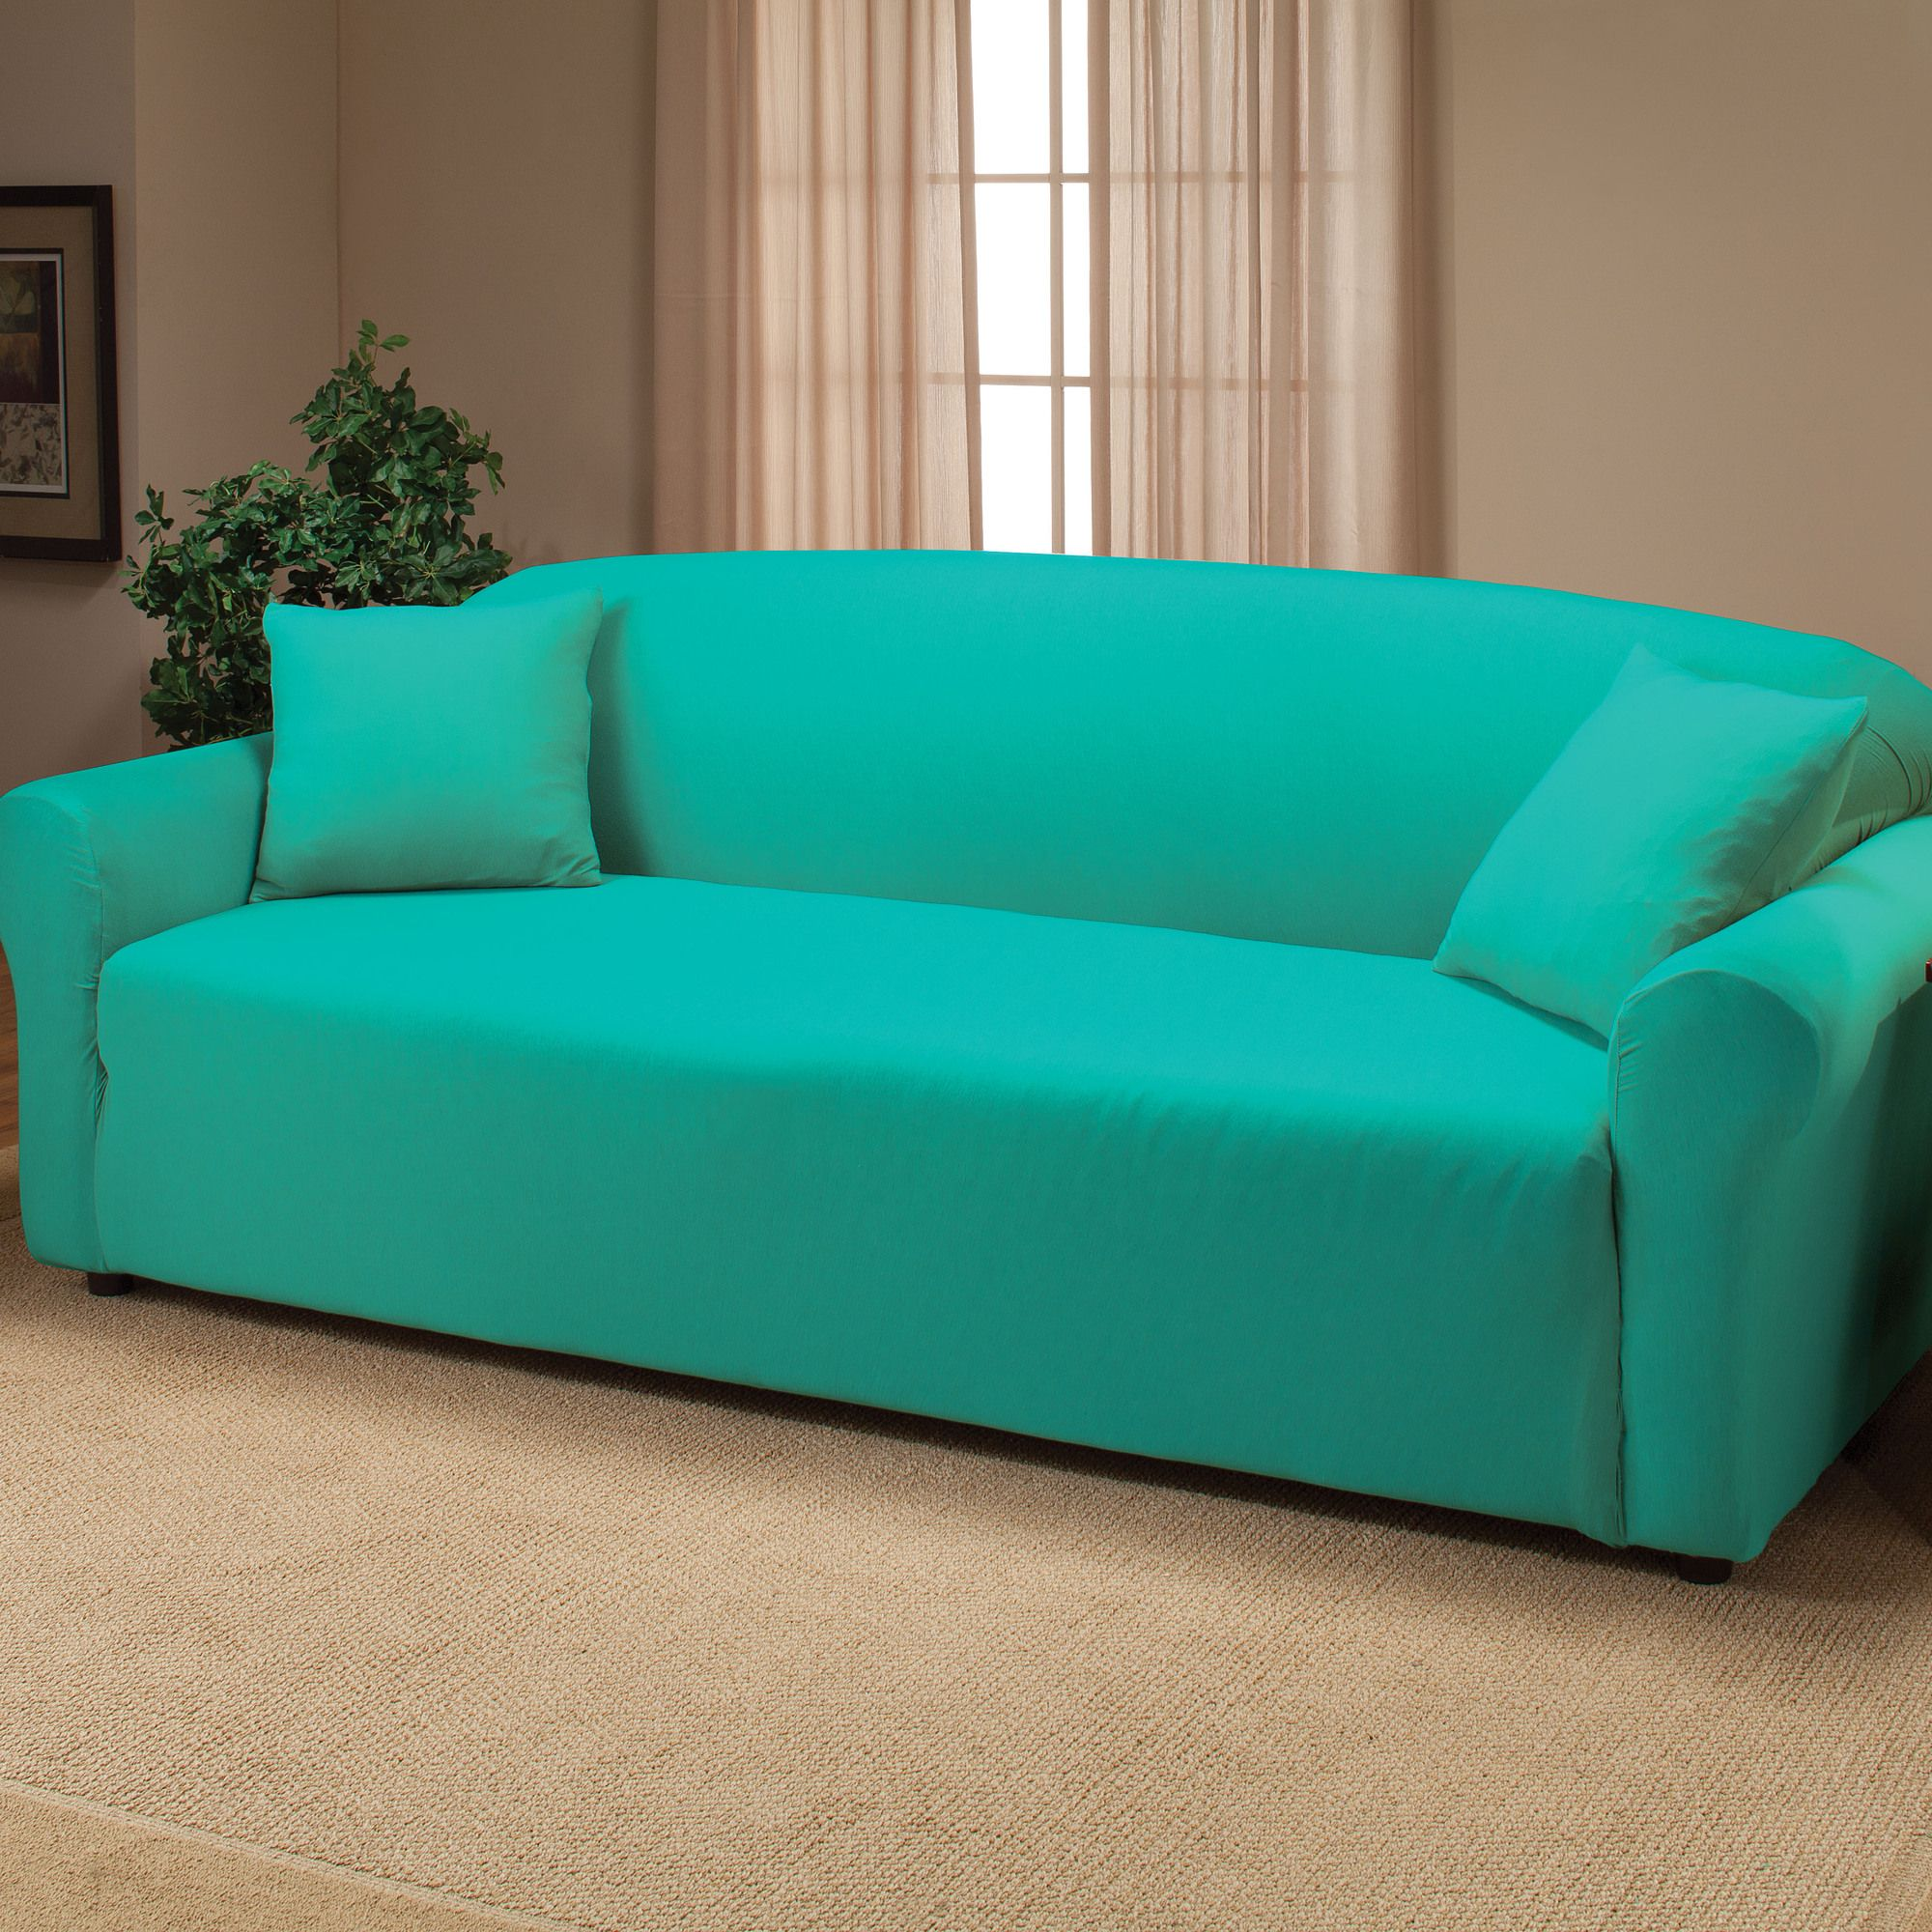 All Slipcovers Wayfair Buy All Slipcovers Online Wayfair Cushions On Sofa Couch Covers Couch And Loveseat